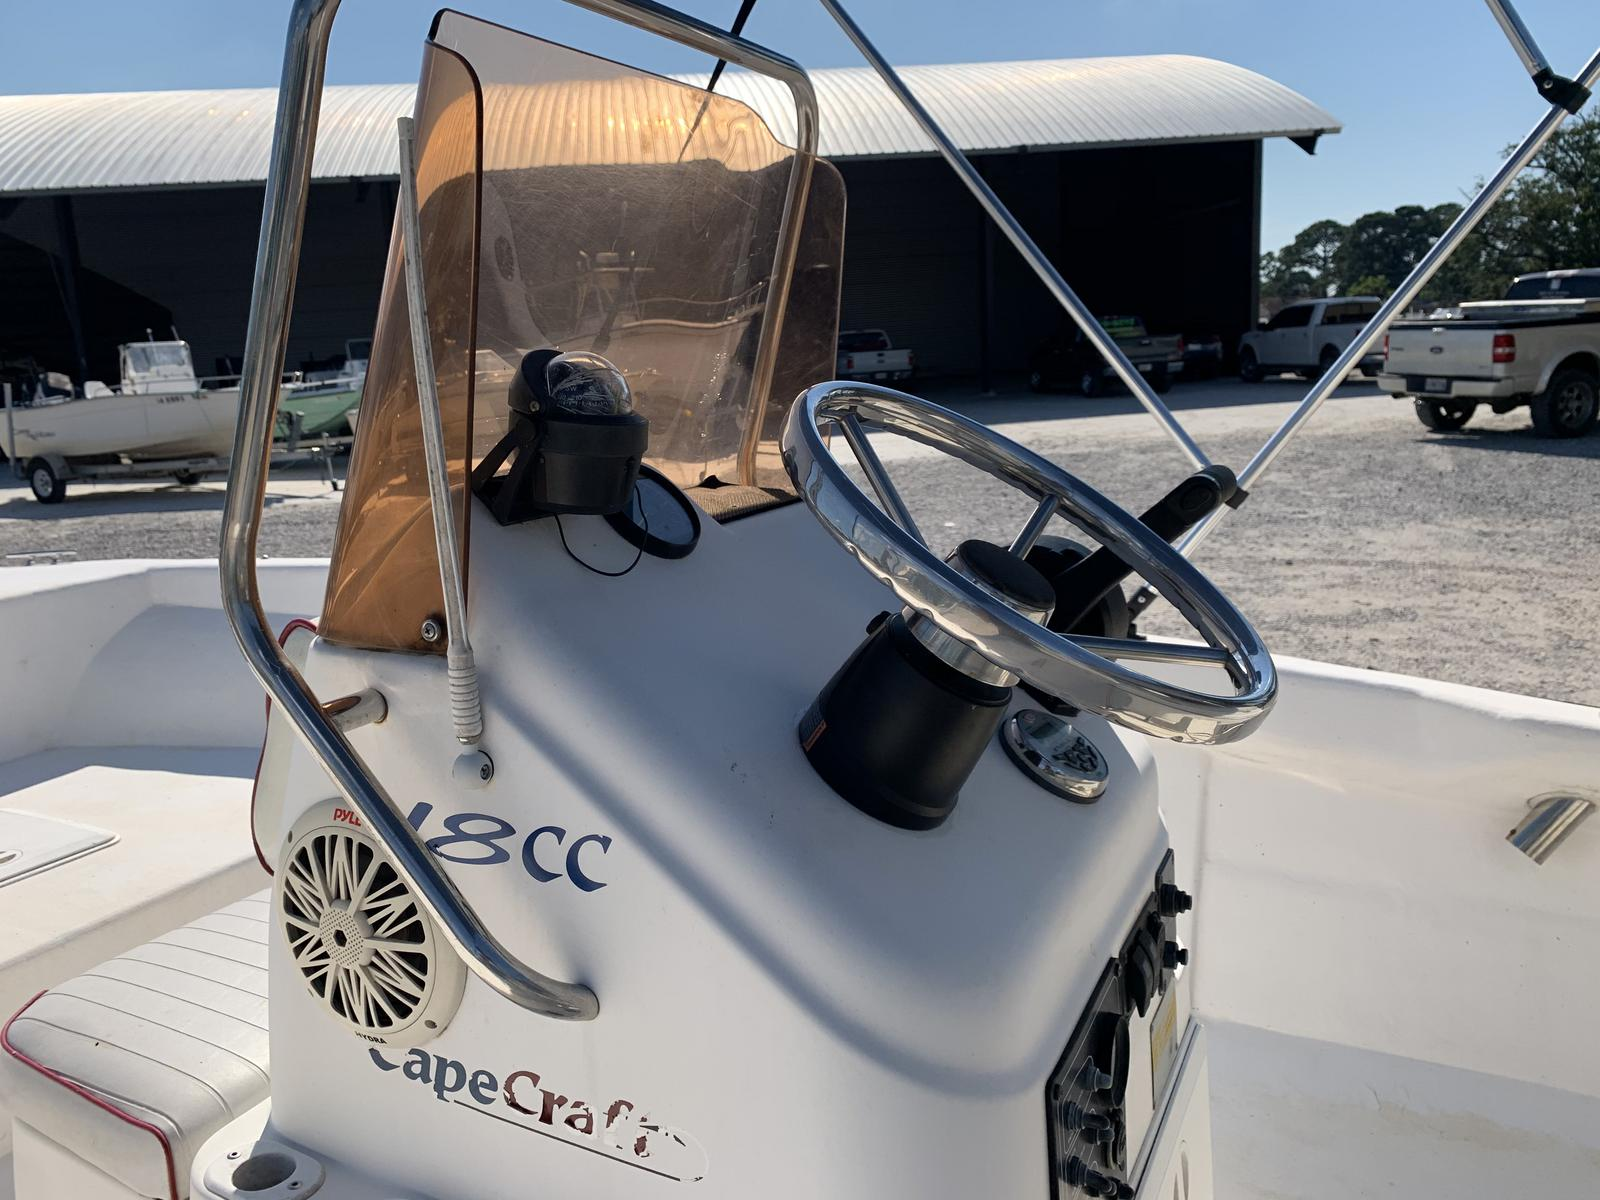 2007 Cape Craft boat for sale, model of the boat is 18 CC & Image # 8 of 8